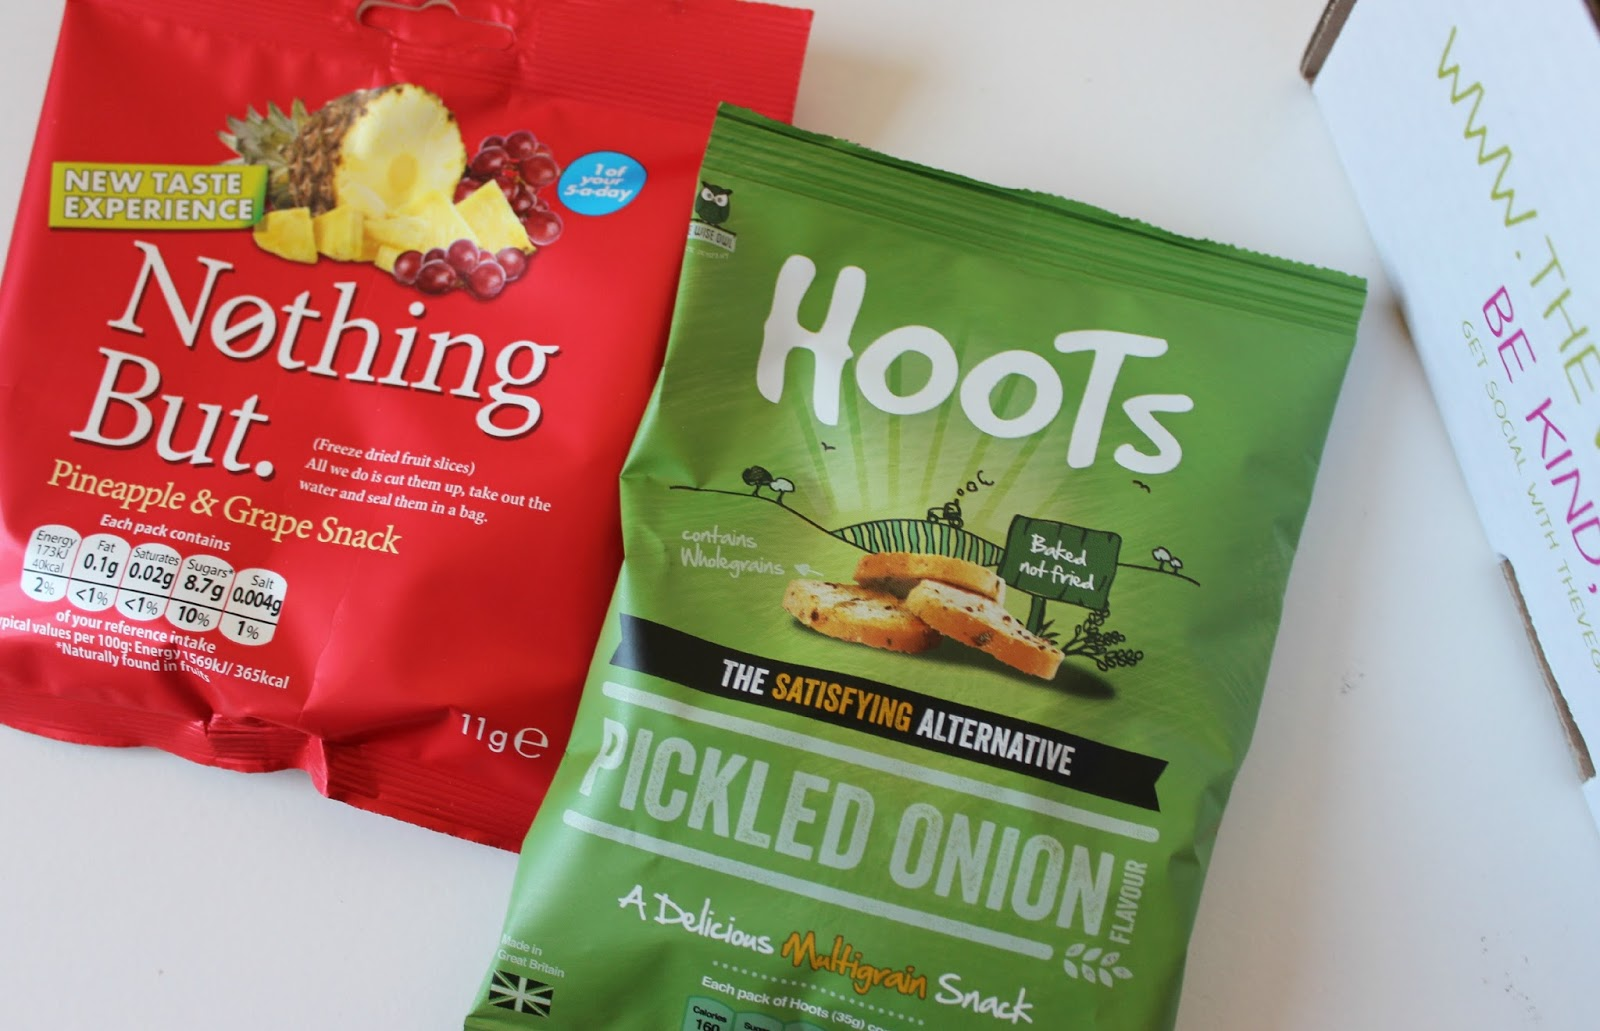 A picture of Nothing But Pineapple & Grape Snack and Hoots Snacks Picked Onion Flavour